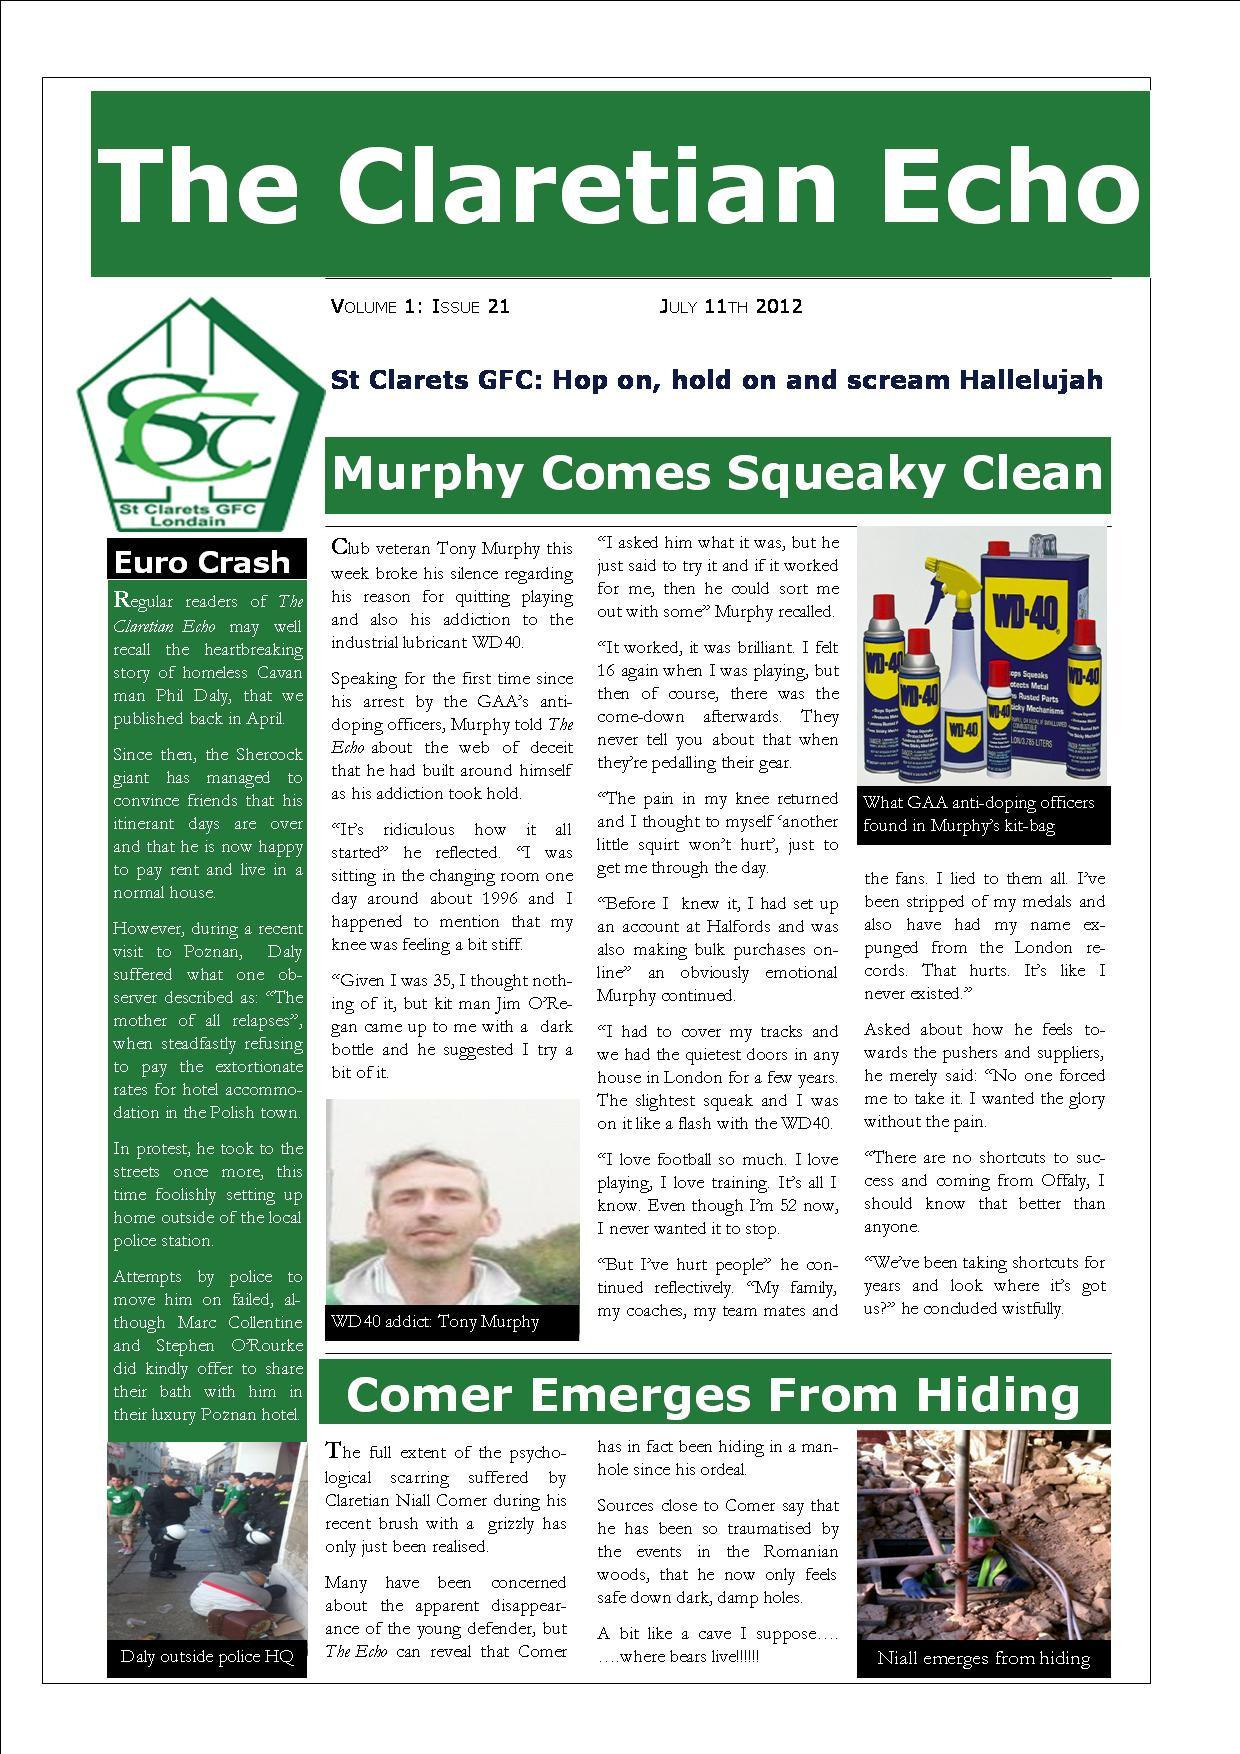 Claretian Echo Issue 21. The weekly newsletter from St Clarets GFC in London. London's best GAA club. A Gaelic football club to be proud of.